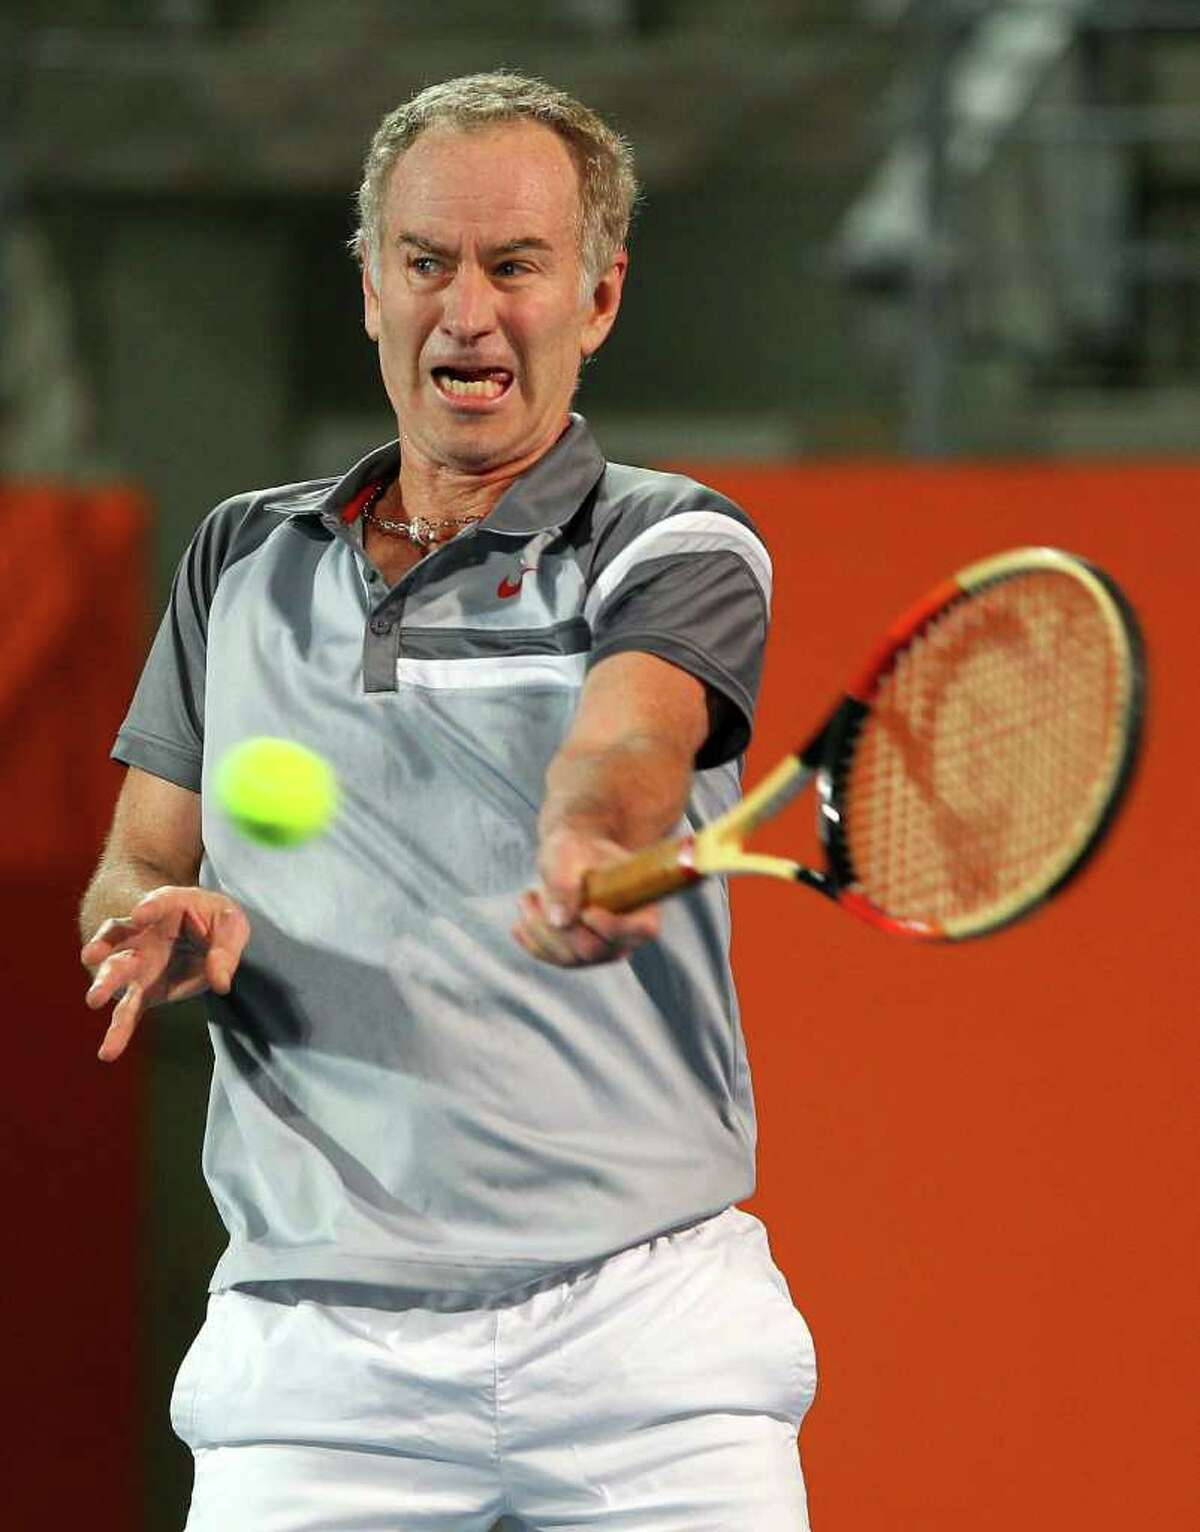 SYDNEY, AUSTRALIA - NOVEMBER 11: John McEnroe of the United States plays a forehand during his match against Wayne Ferreira of South Africa during day one of the Champions Downunder at Sydney Olympic Park Tennis Centre on November 11, 2010 in Sydney, Australia. (Photo by Cameron Spencer/Getty Images for Champions Downunder) champ_111